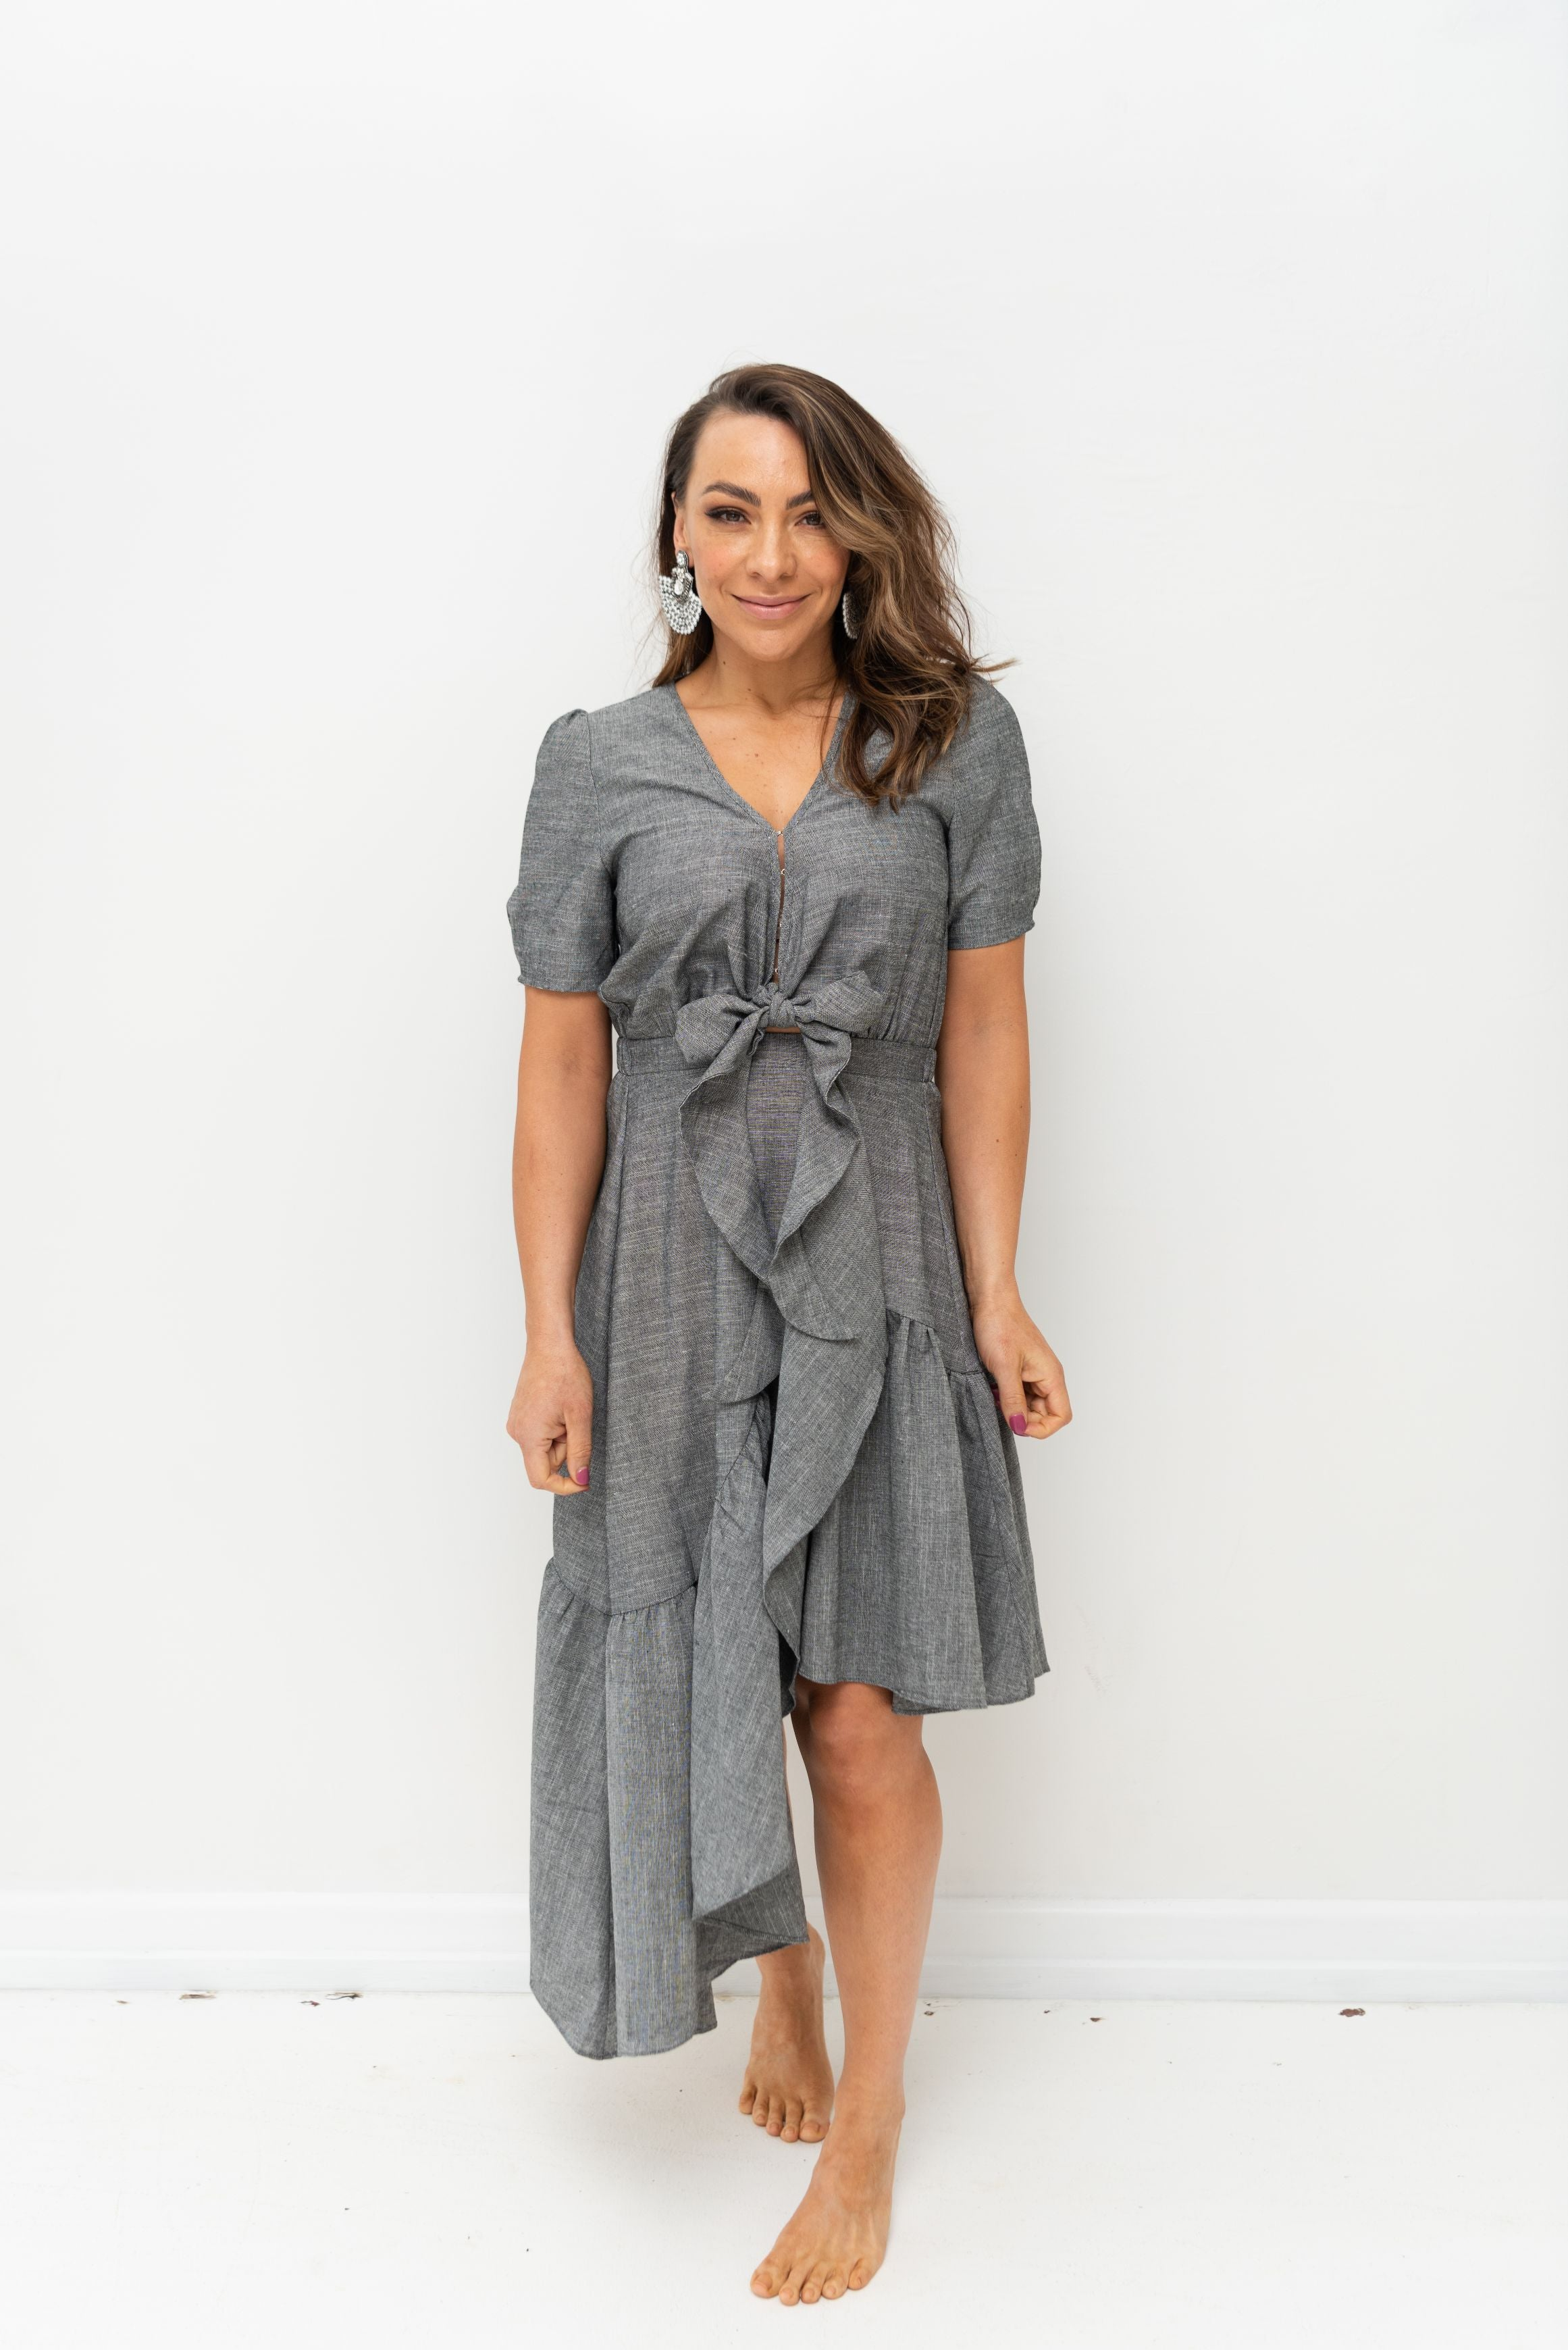 LIBBY DRESS - Pewter